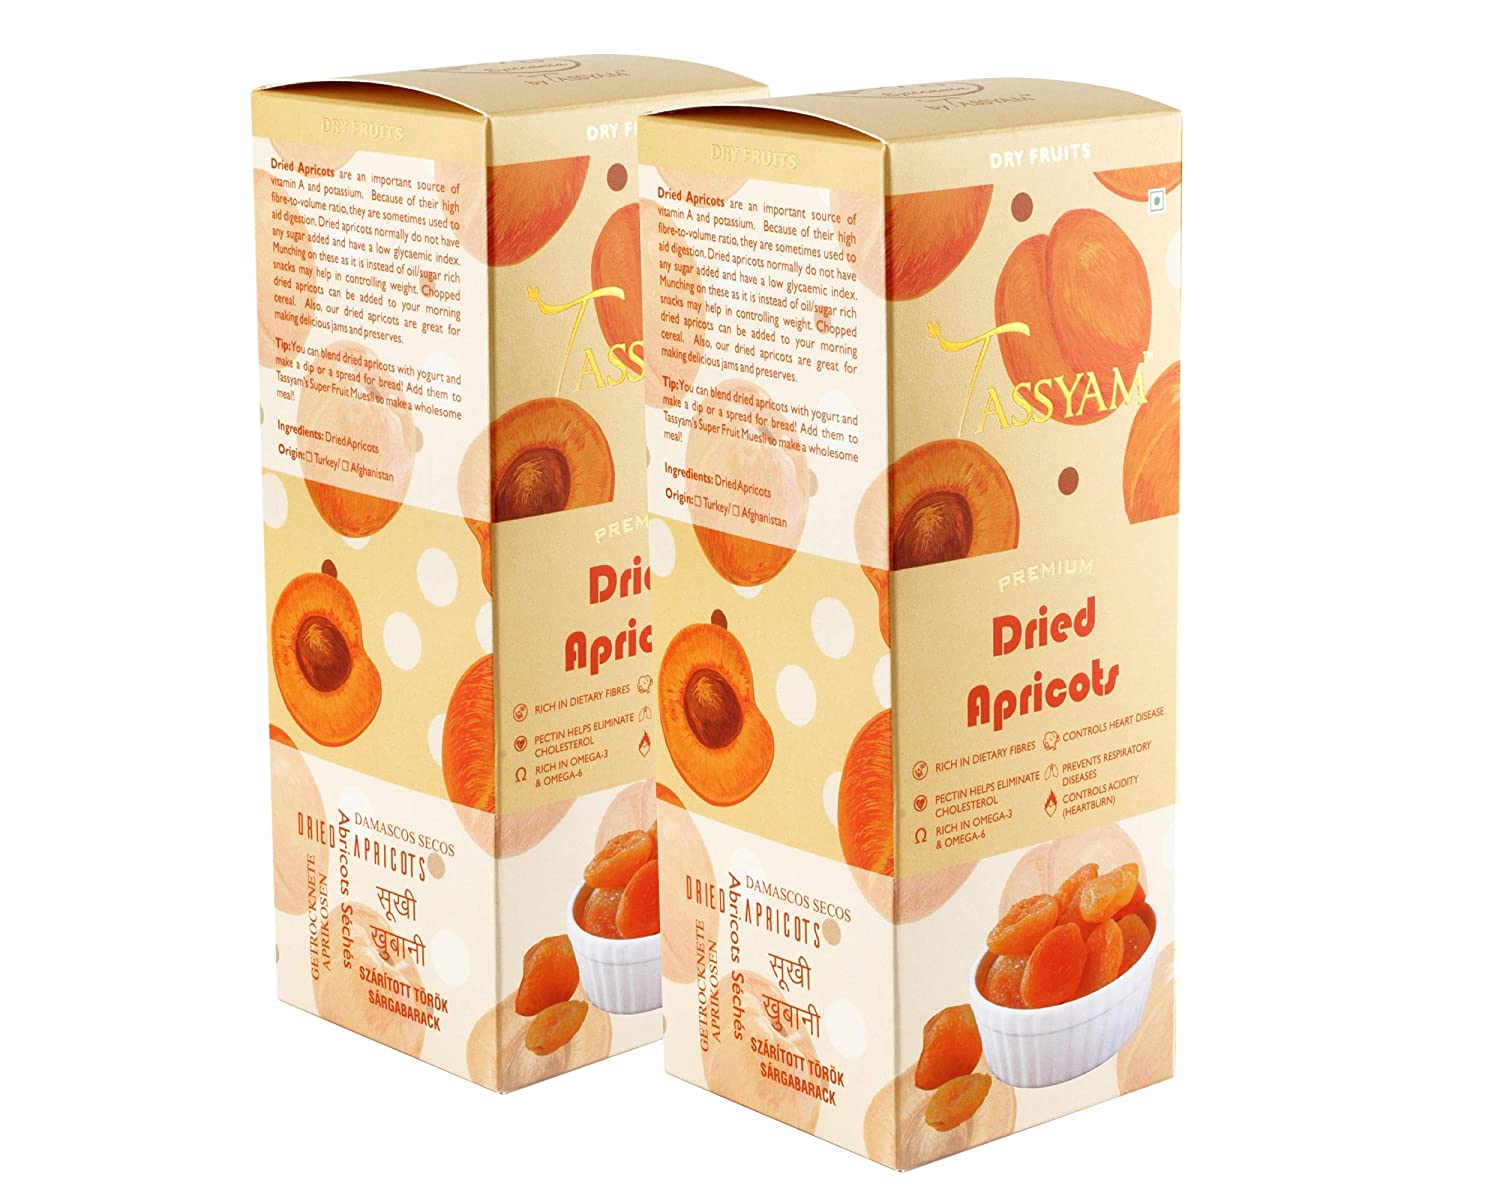 Tassyam Premium Dried Apricots 400g 2x 200g Turkish Khubani Healthy Dry Fruits Luxury Box Amazon In Grocery Gourmet Foods